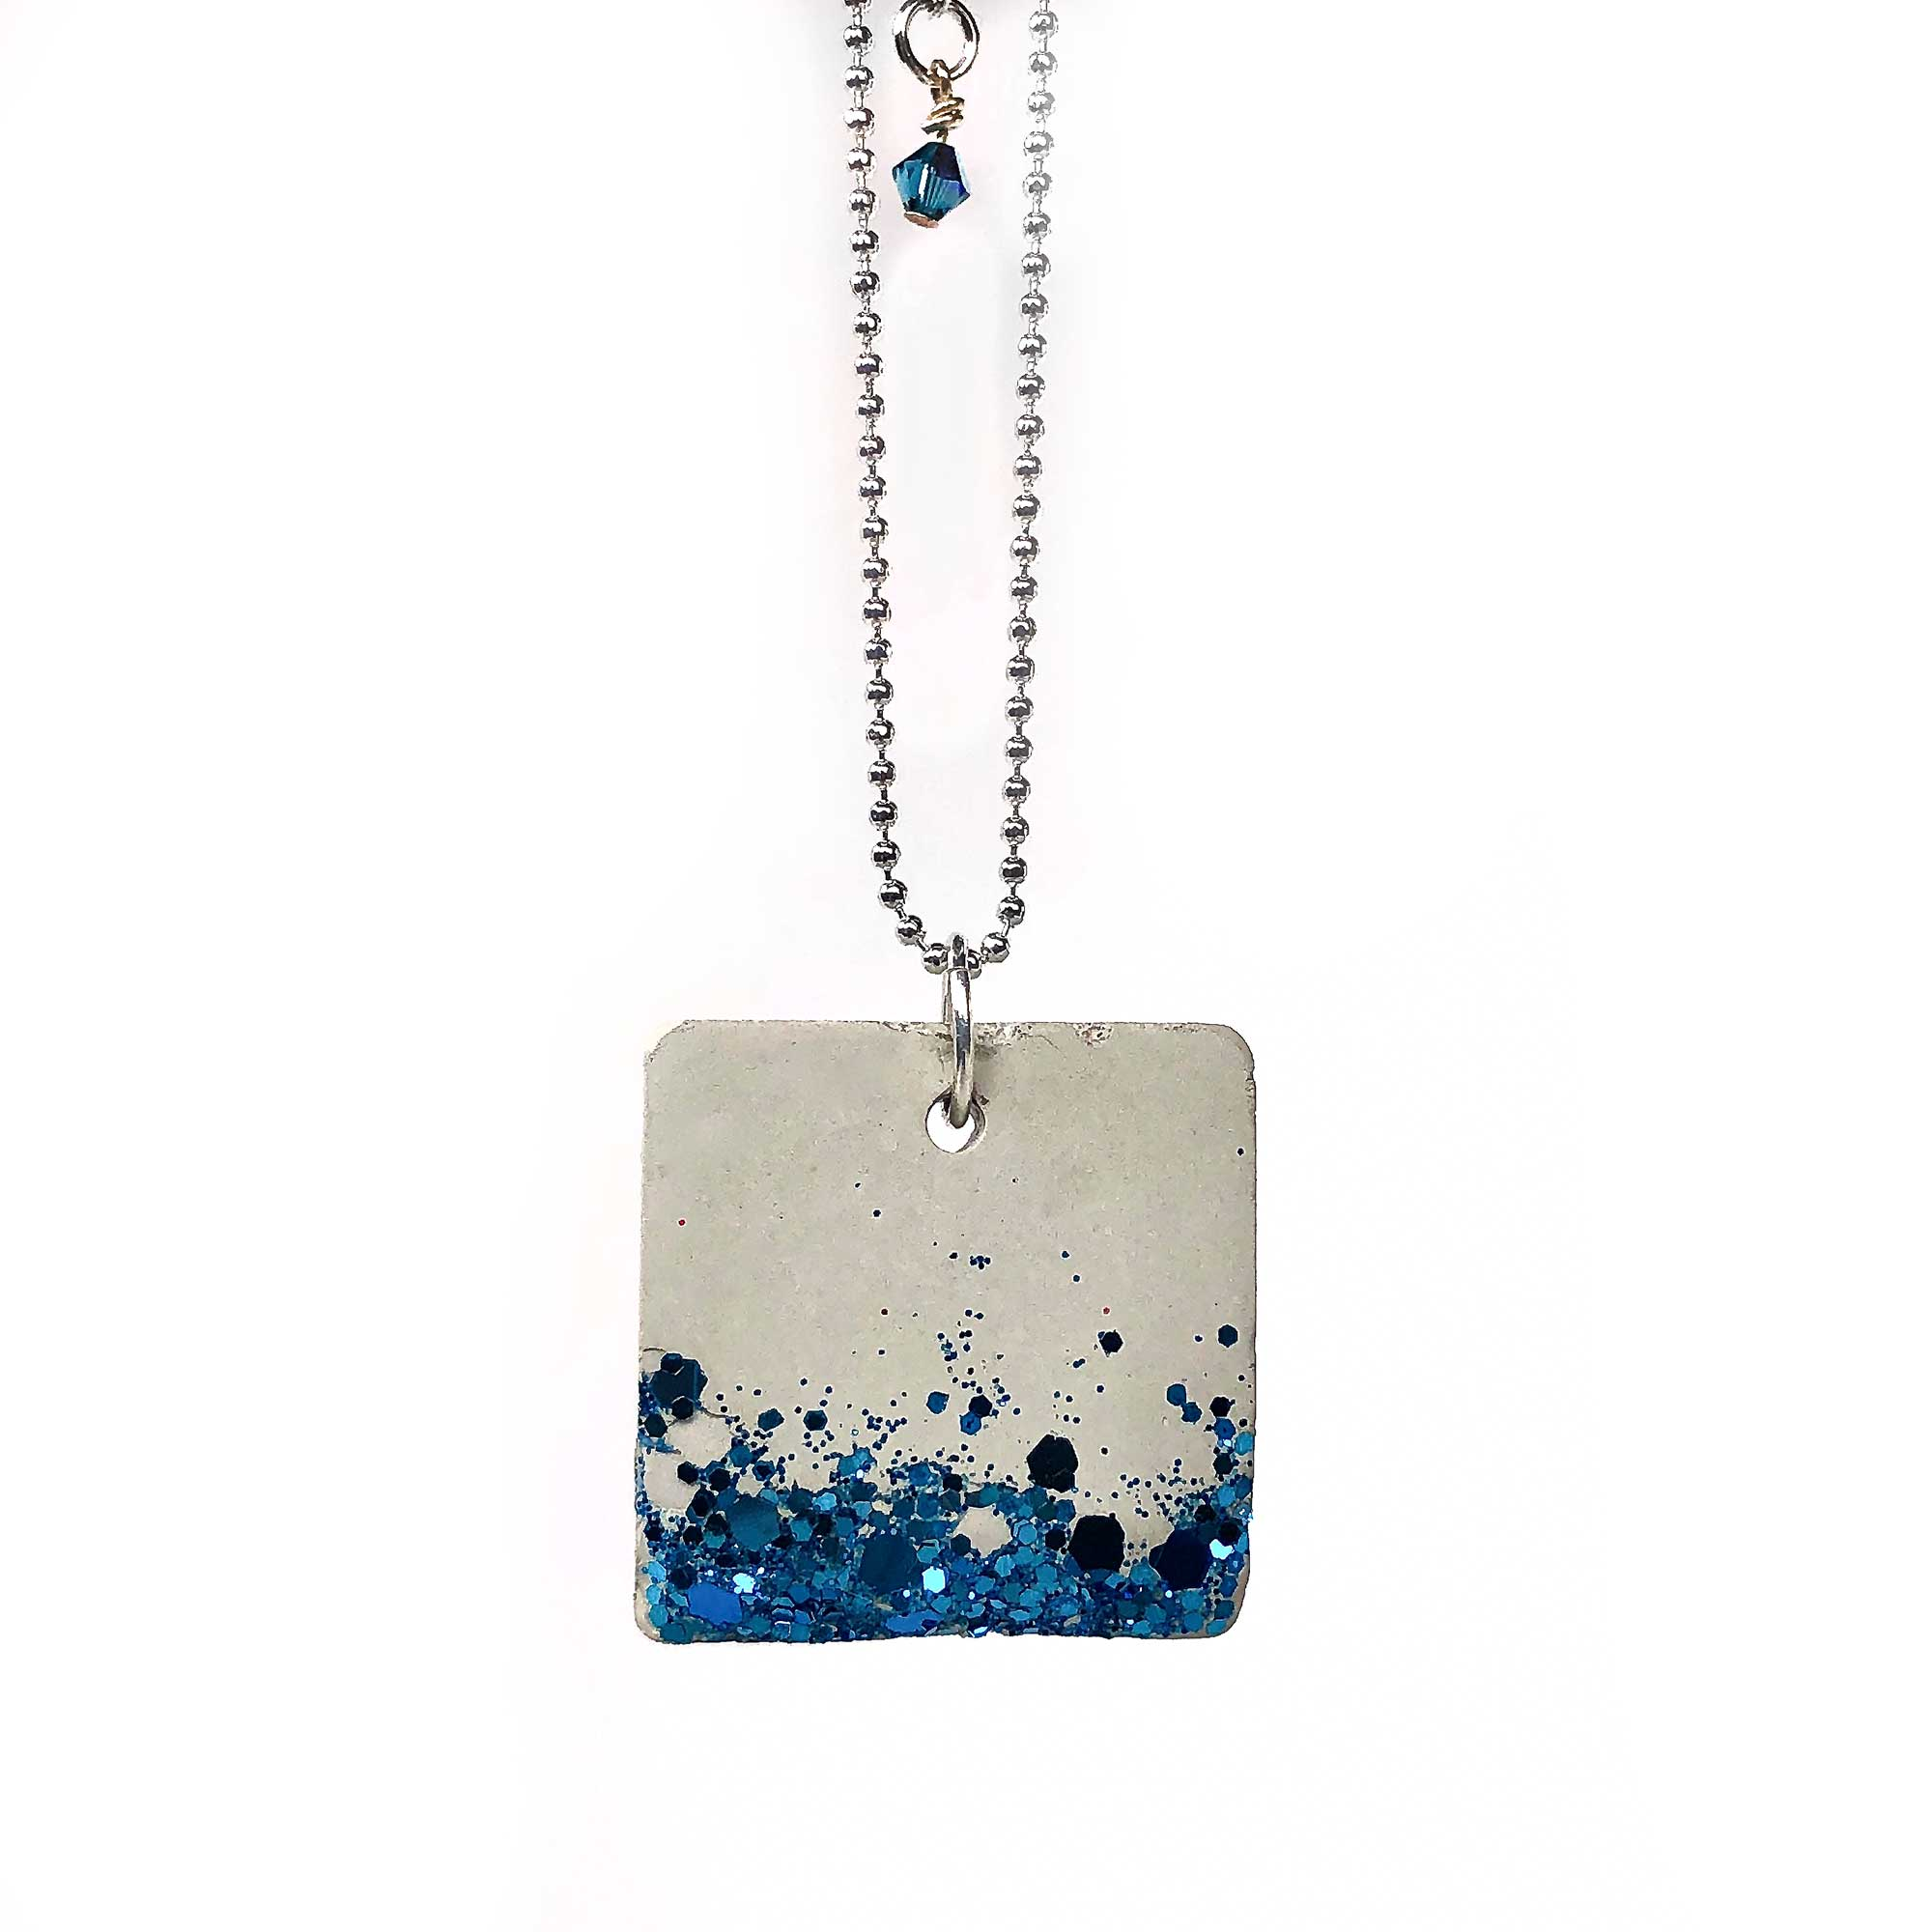 Shimmering Teal Embedded Square Concrete Necklace